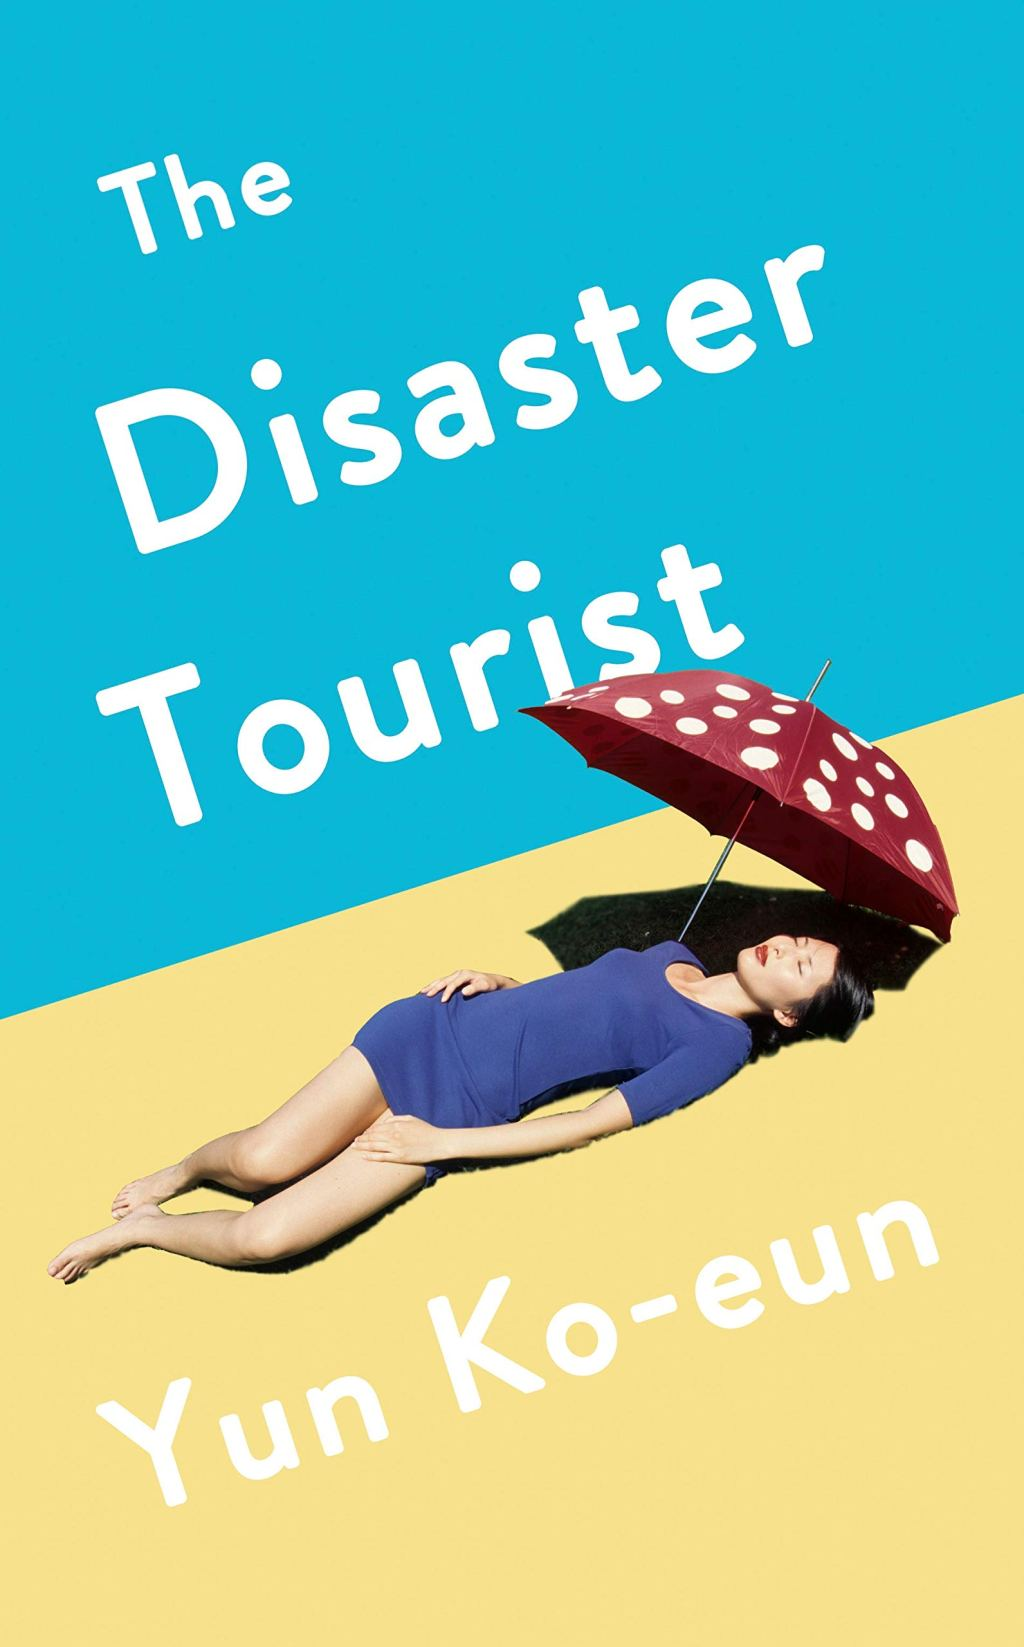 The Disaster Tourist, Yun Ko-Eun, Lizzie Buehler (trans) (Counterpoint, August 2020; Serpent's Tail, July 2020)